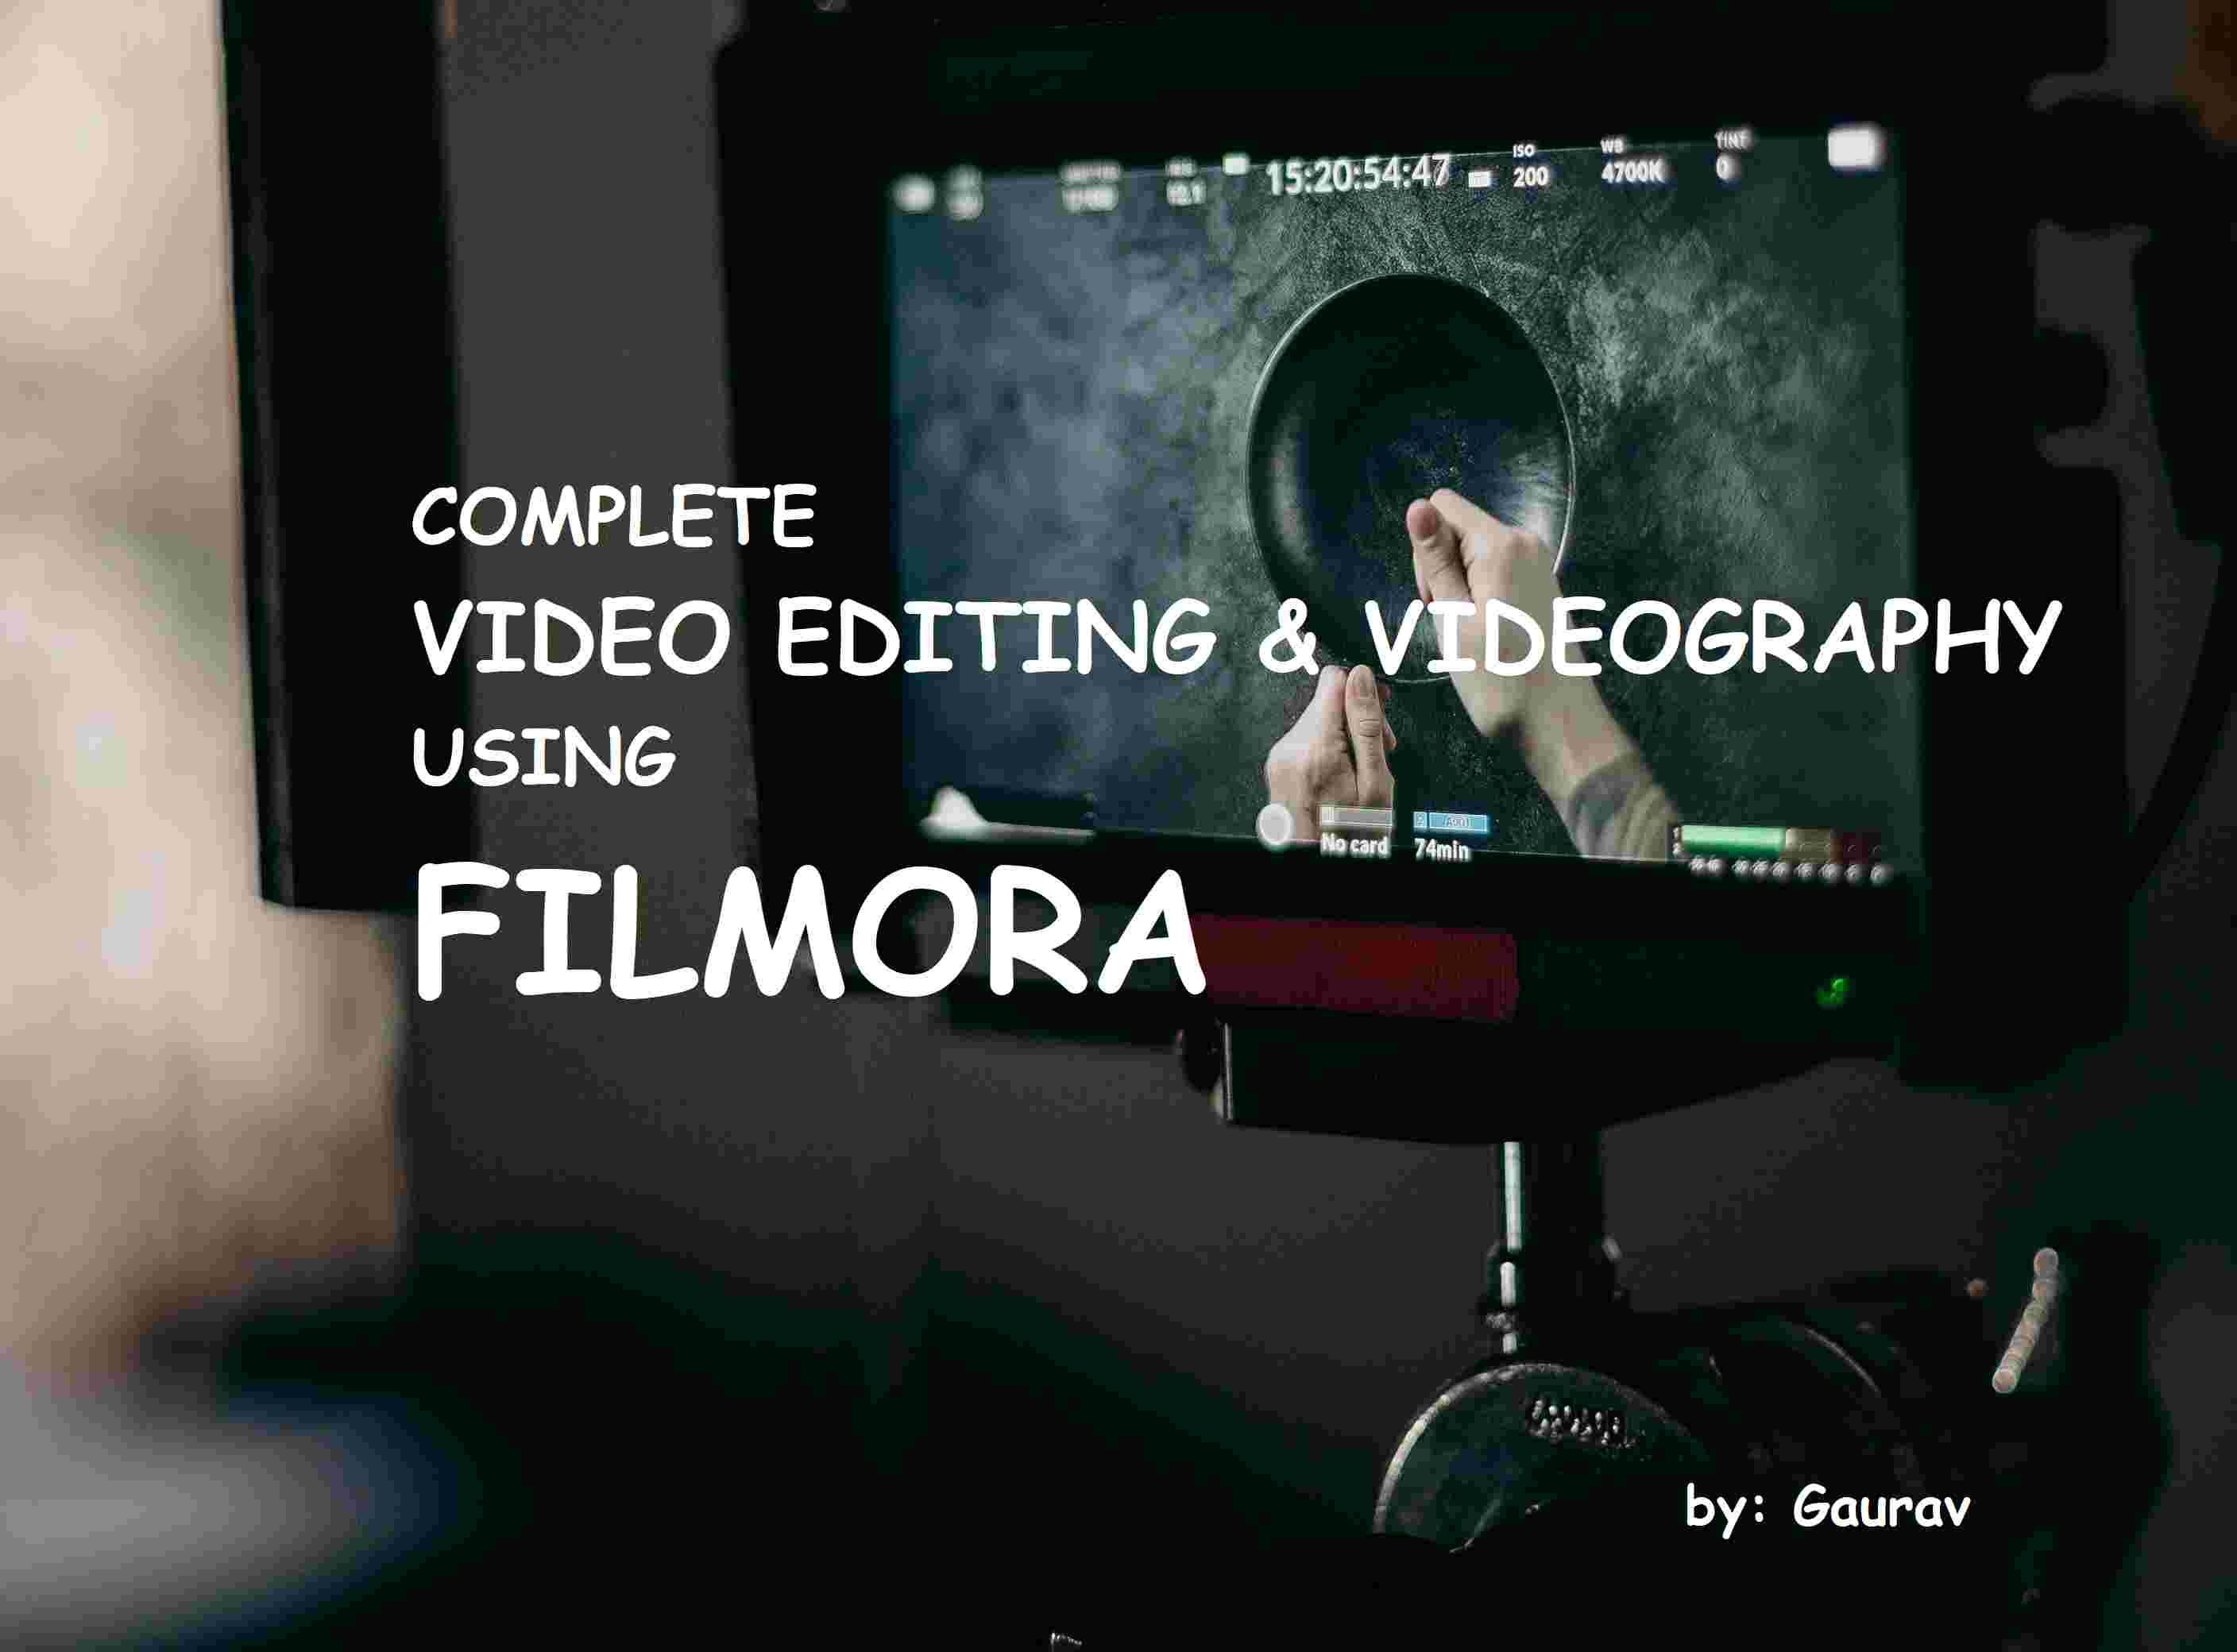 Complete Video Editing & Videography Using Filmora